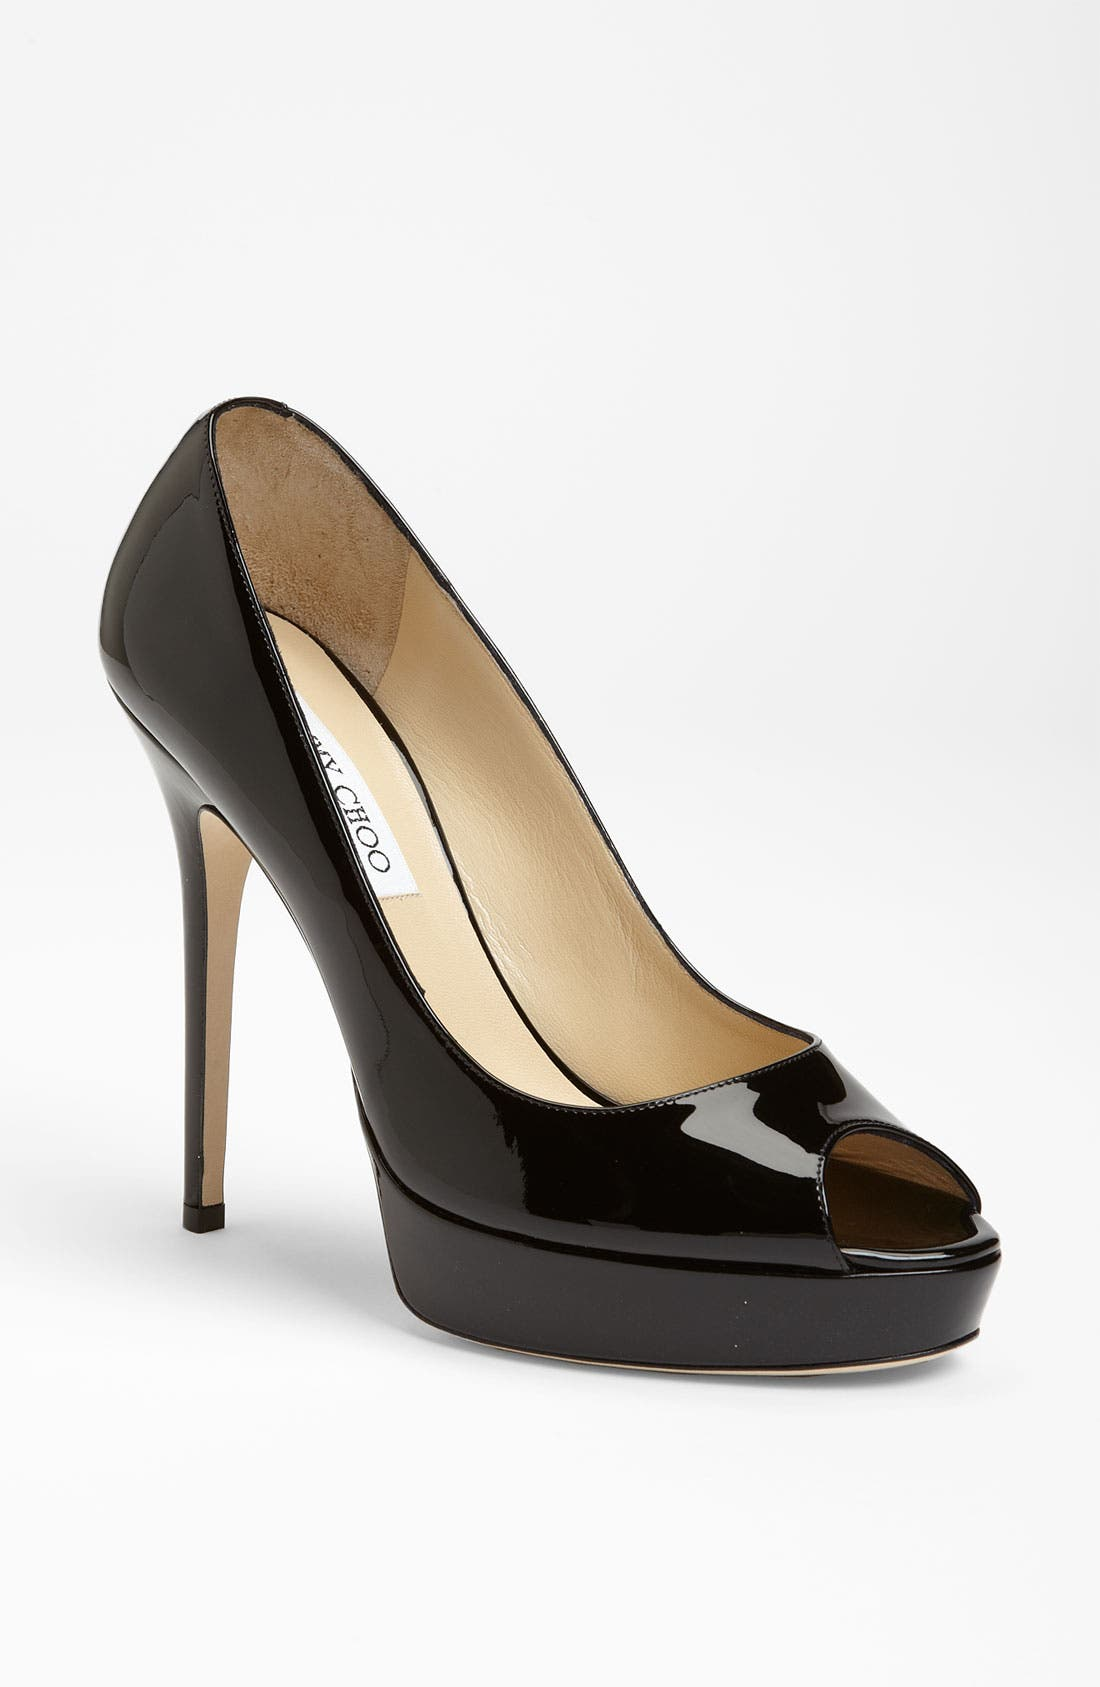 Alternate Image 1 Selected - Jimmy Choo 'Crown' Pump